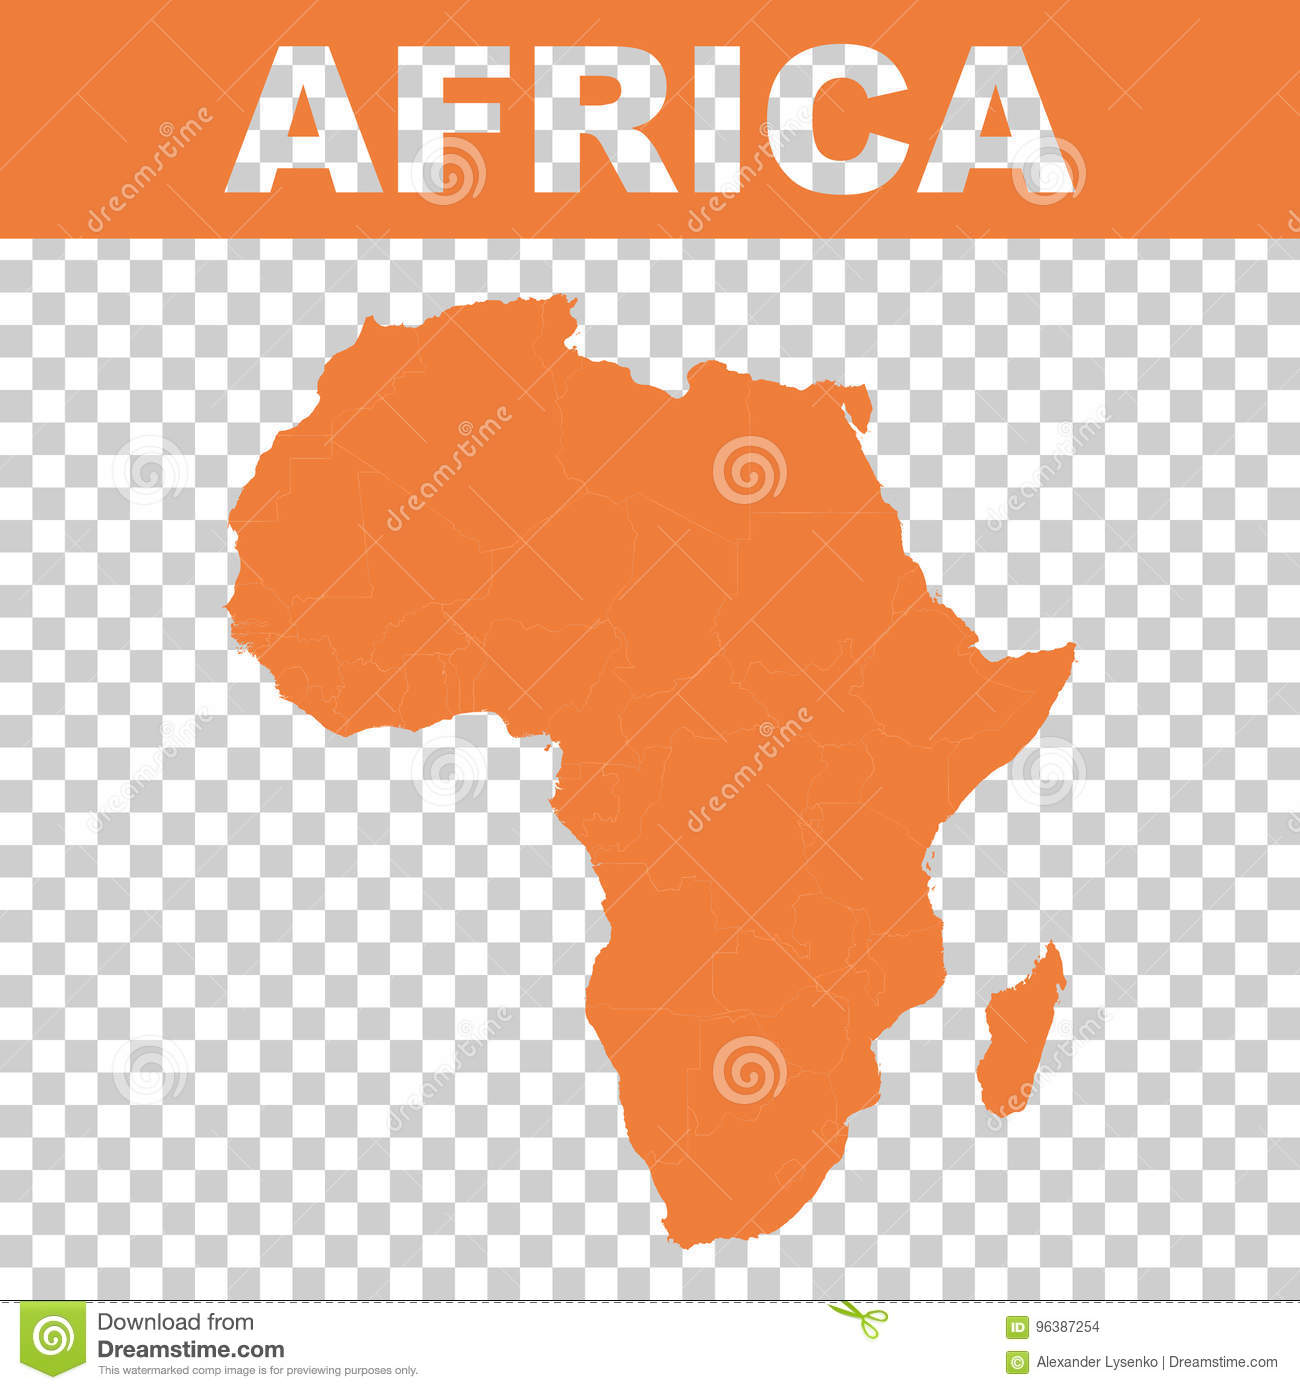 Map Of Africa Equator.Map Of Africa Vector Flat Stock Vector Illustration Of Equator